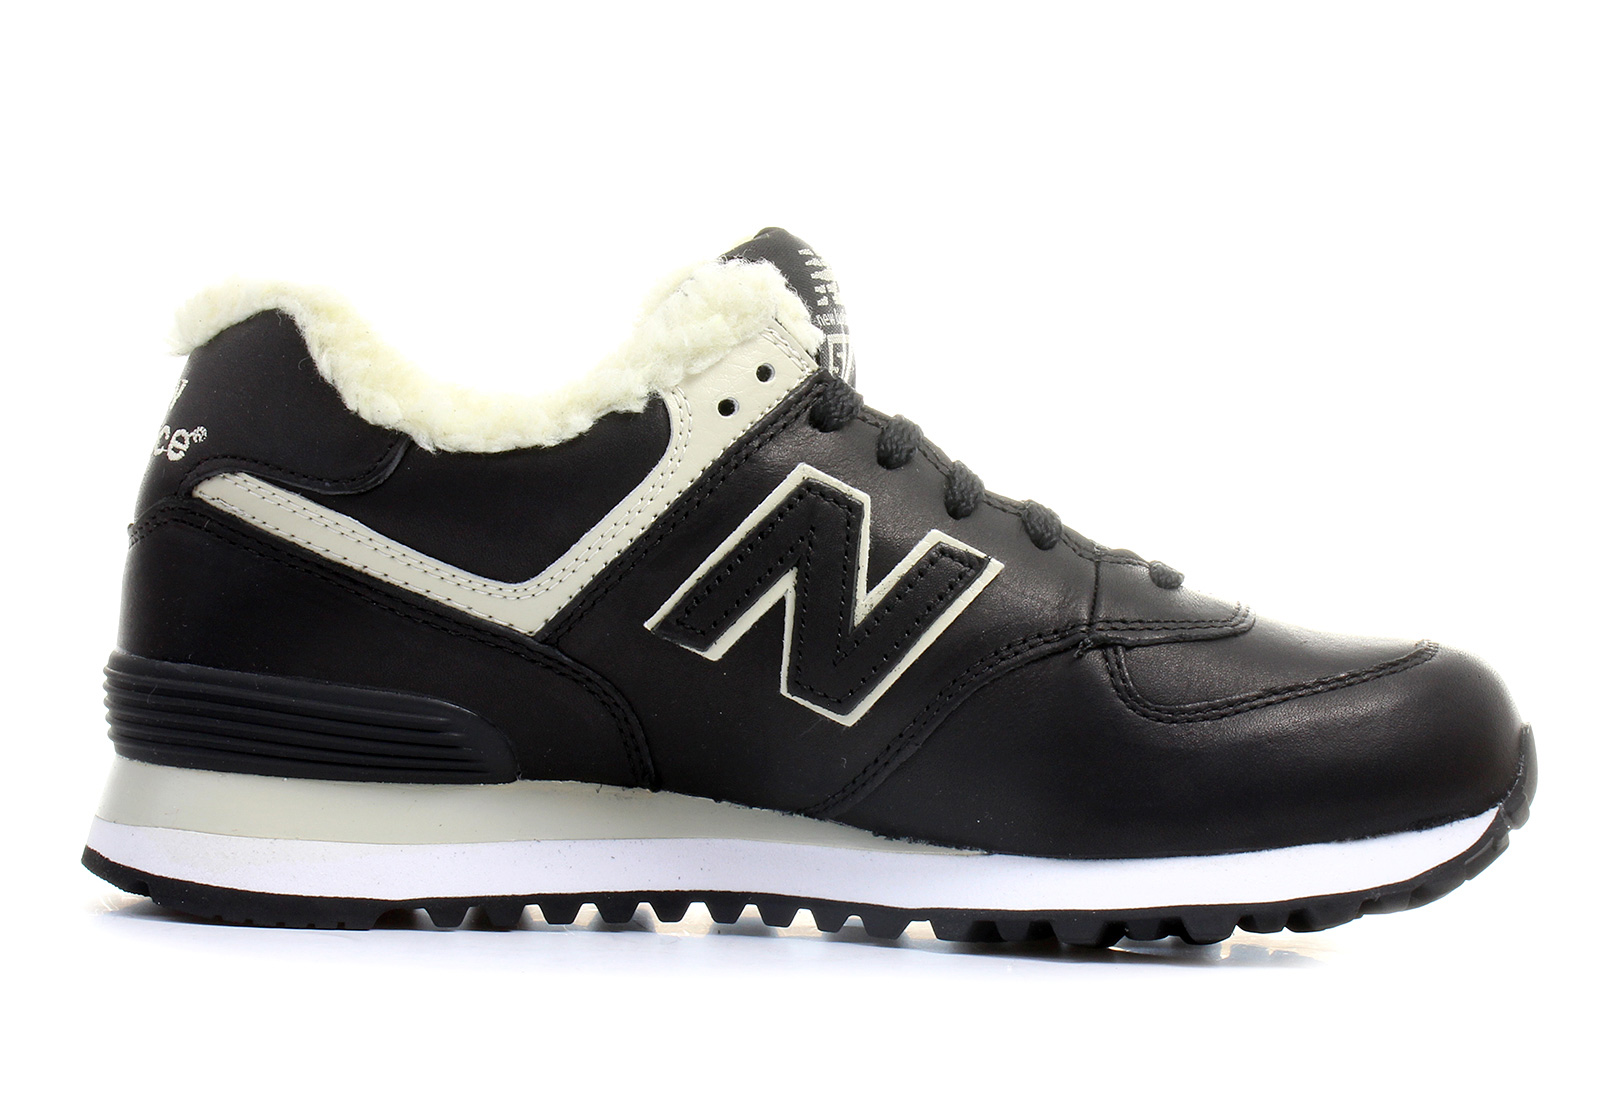 new balance shoes ml574 ml574bl online shop for sneakers shoes and boots. Black Bedroom Furniture Sets. Home Design Ideas